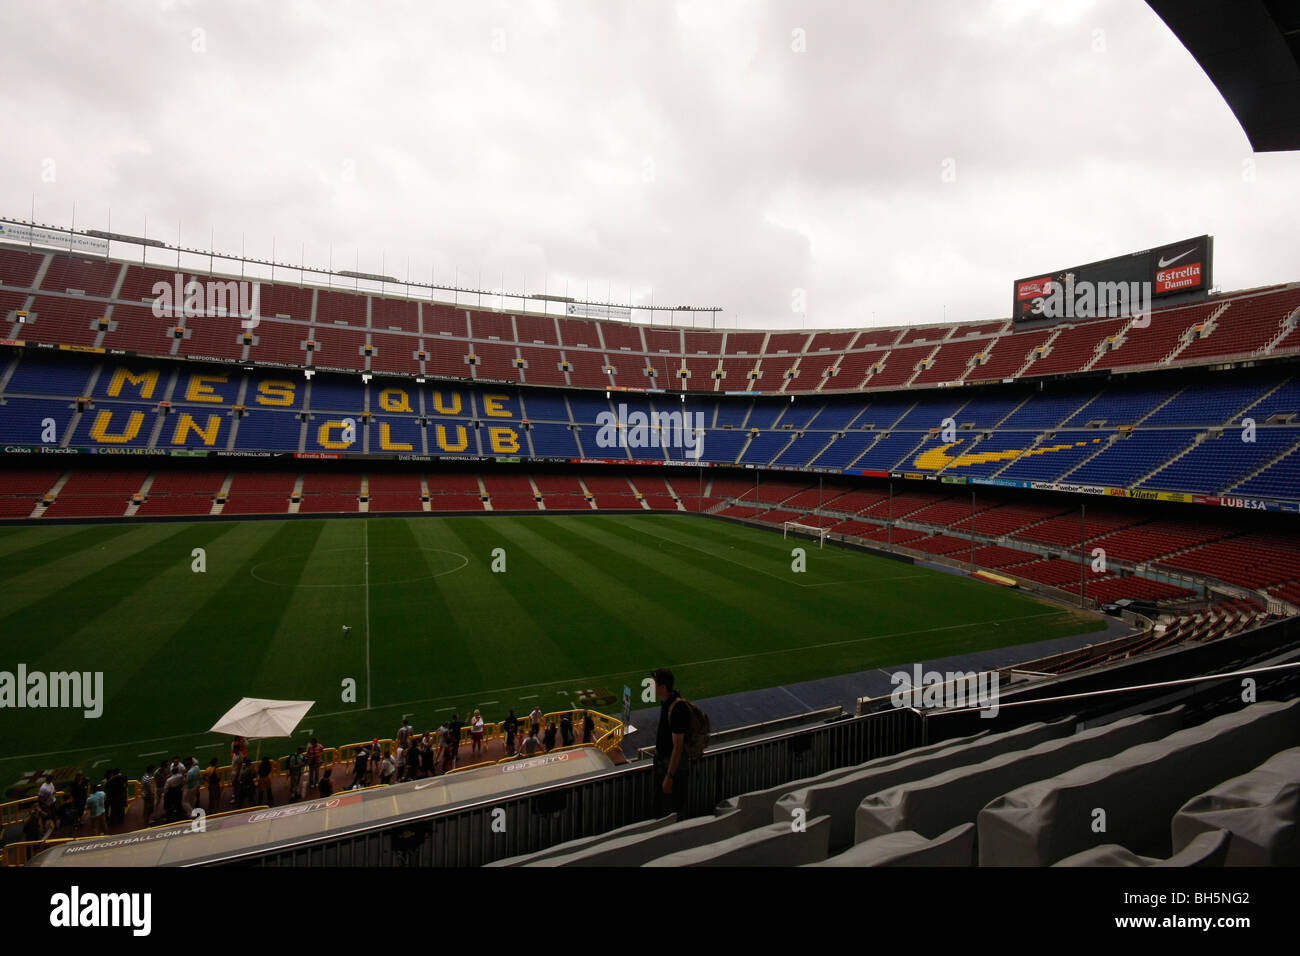 The view inside the Nou Camp, stadium of FC Barcelona. - Stock Image